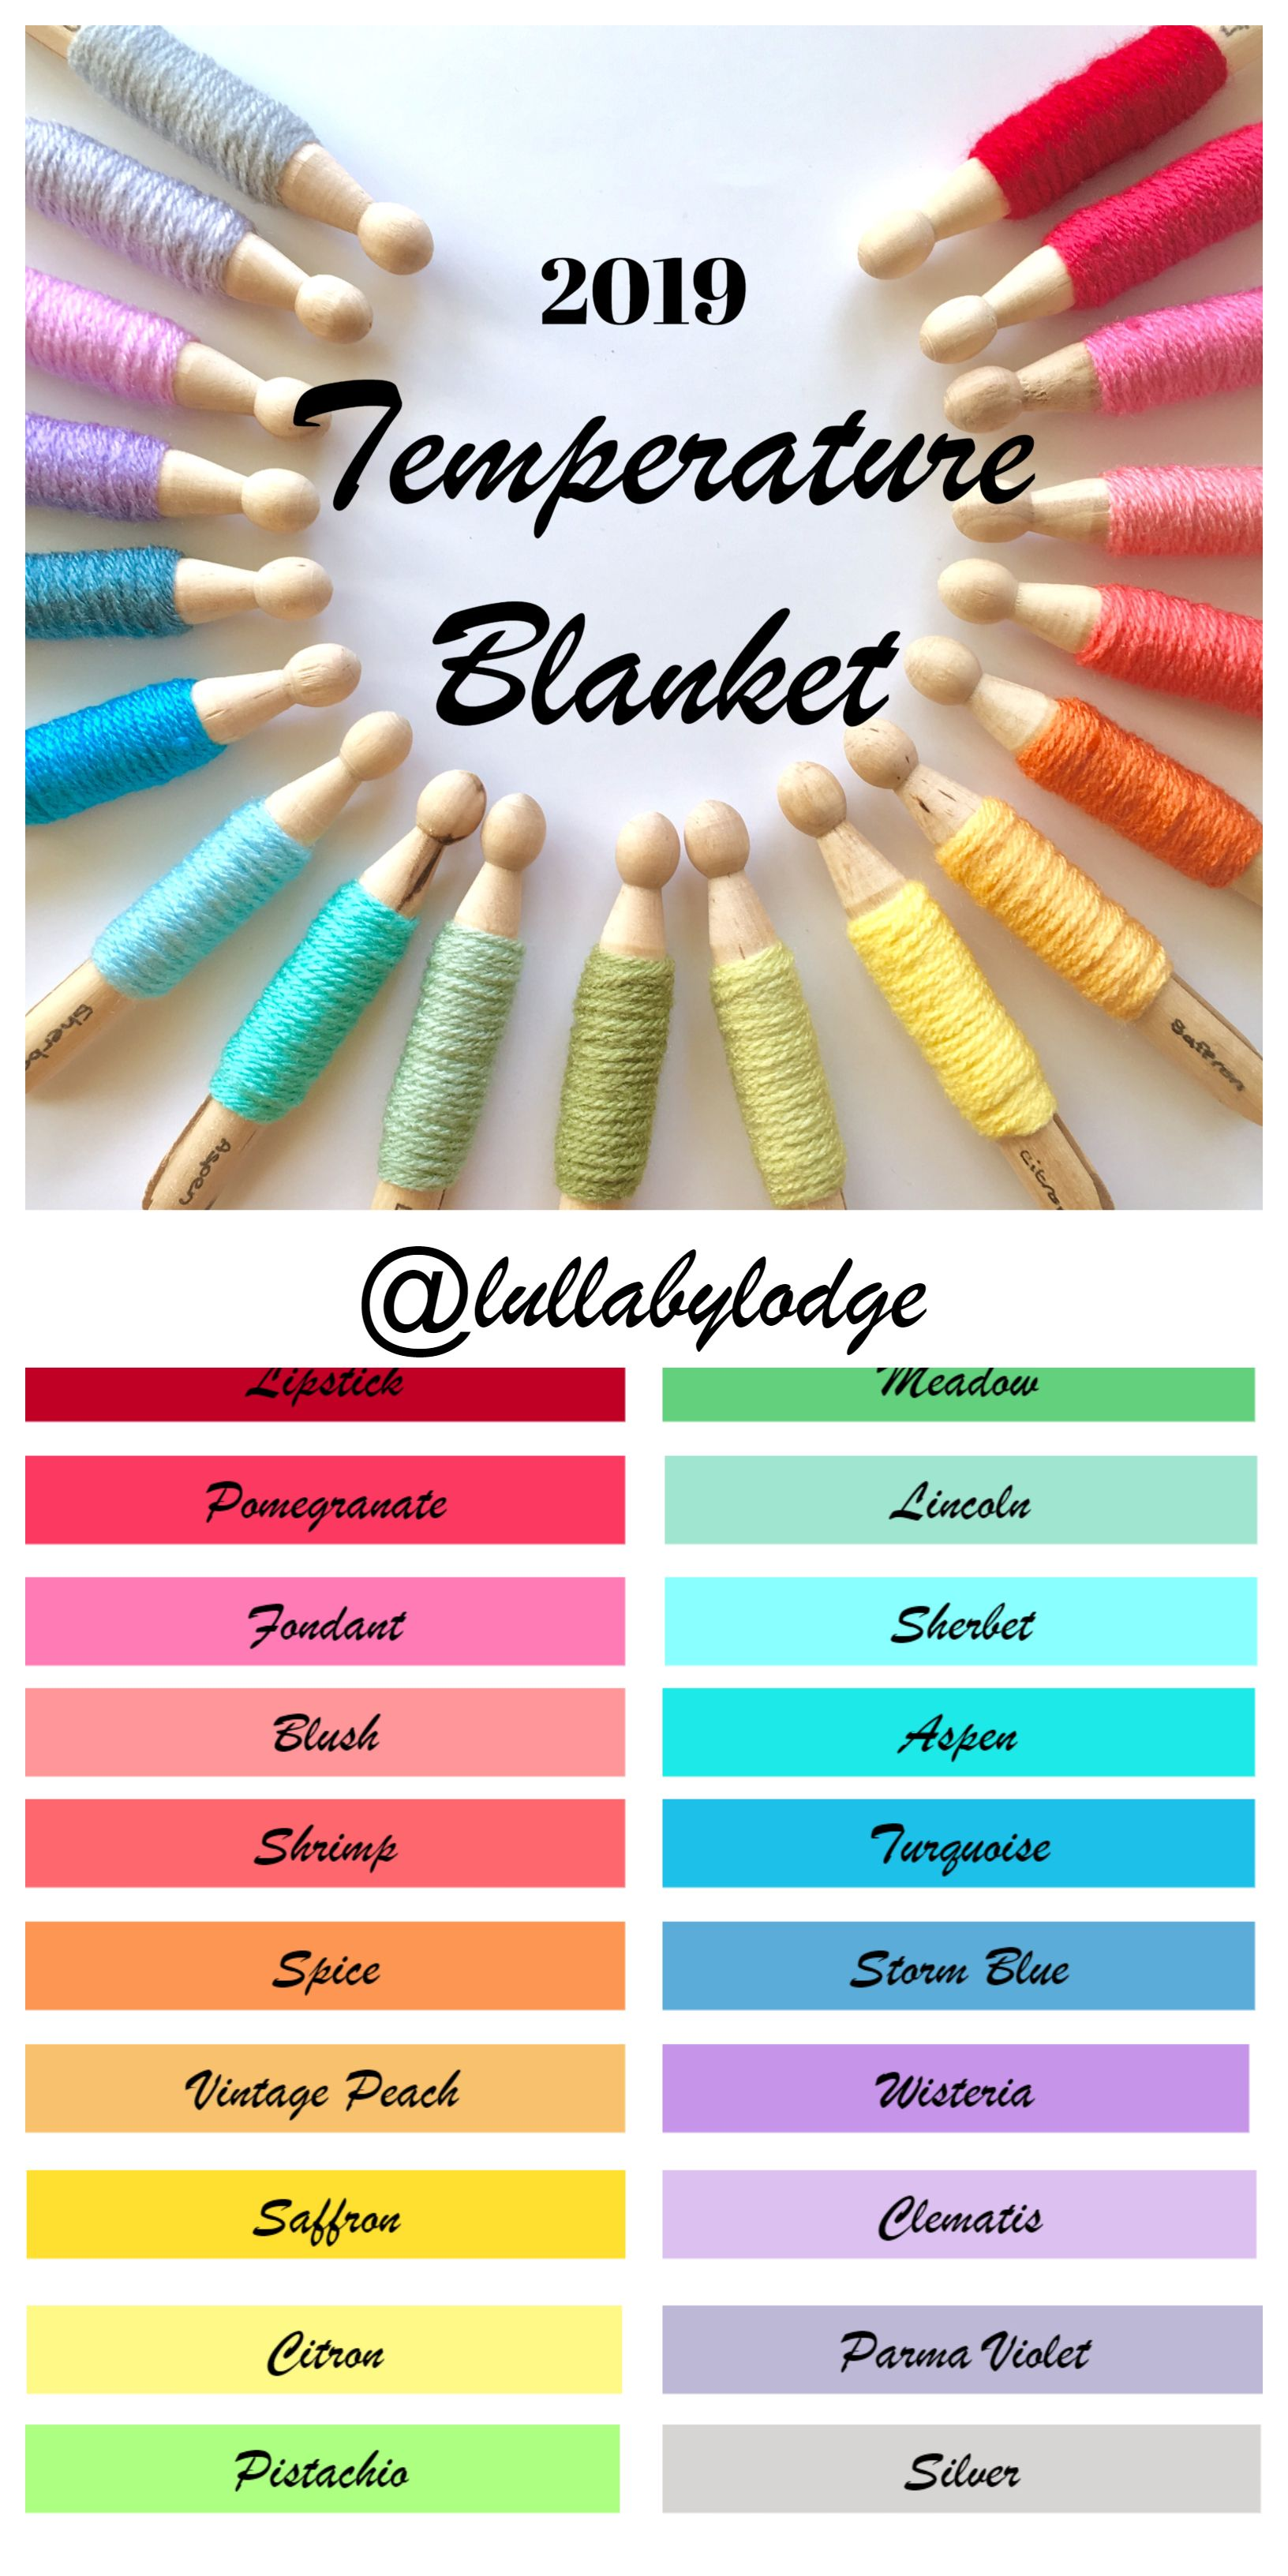 2019 Temperature Blanket Free Pattern & CAL | Projects to